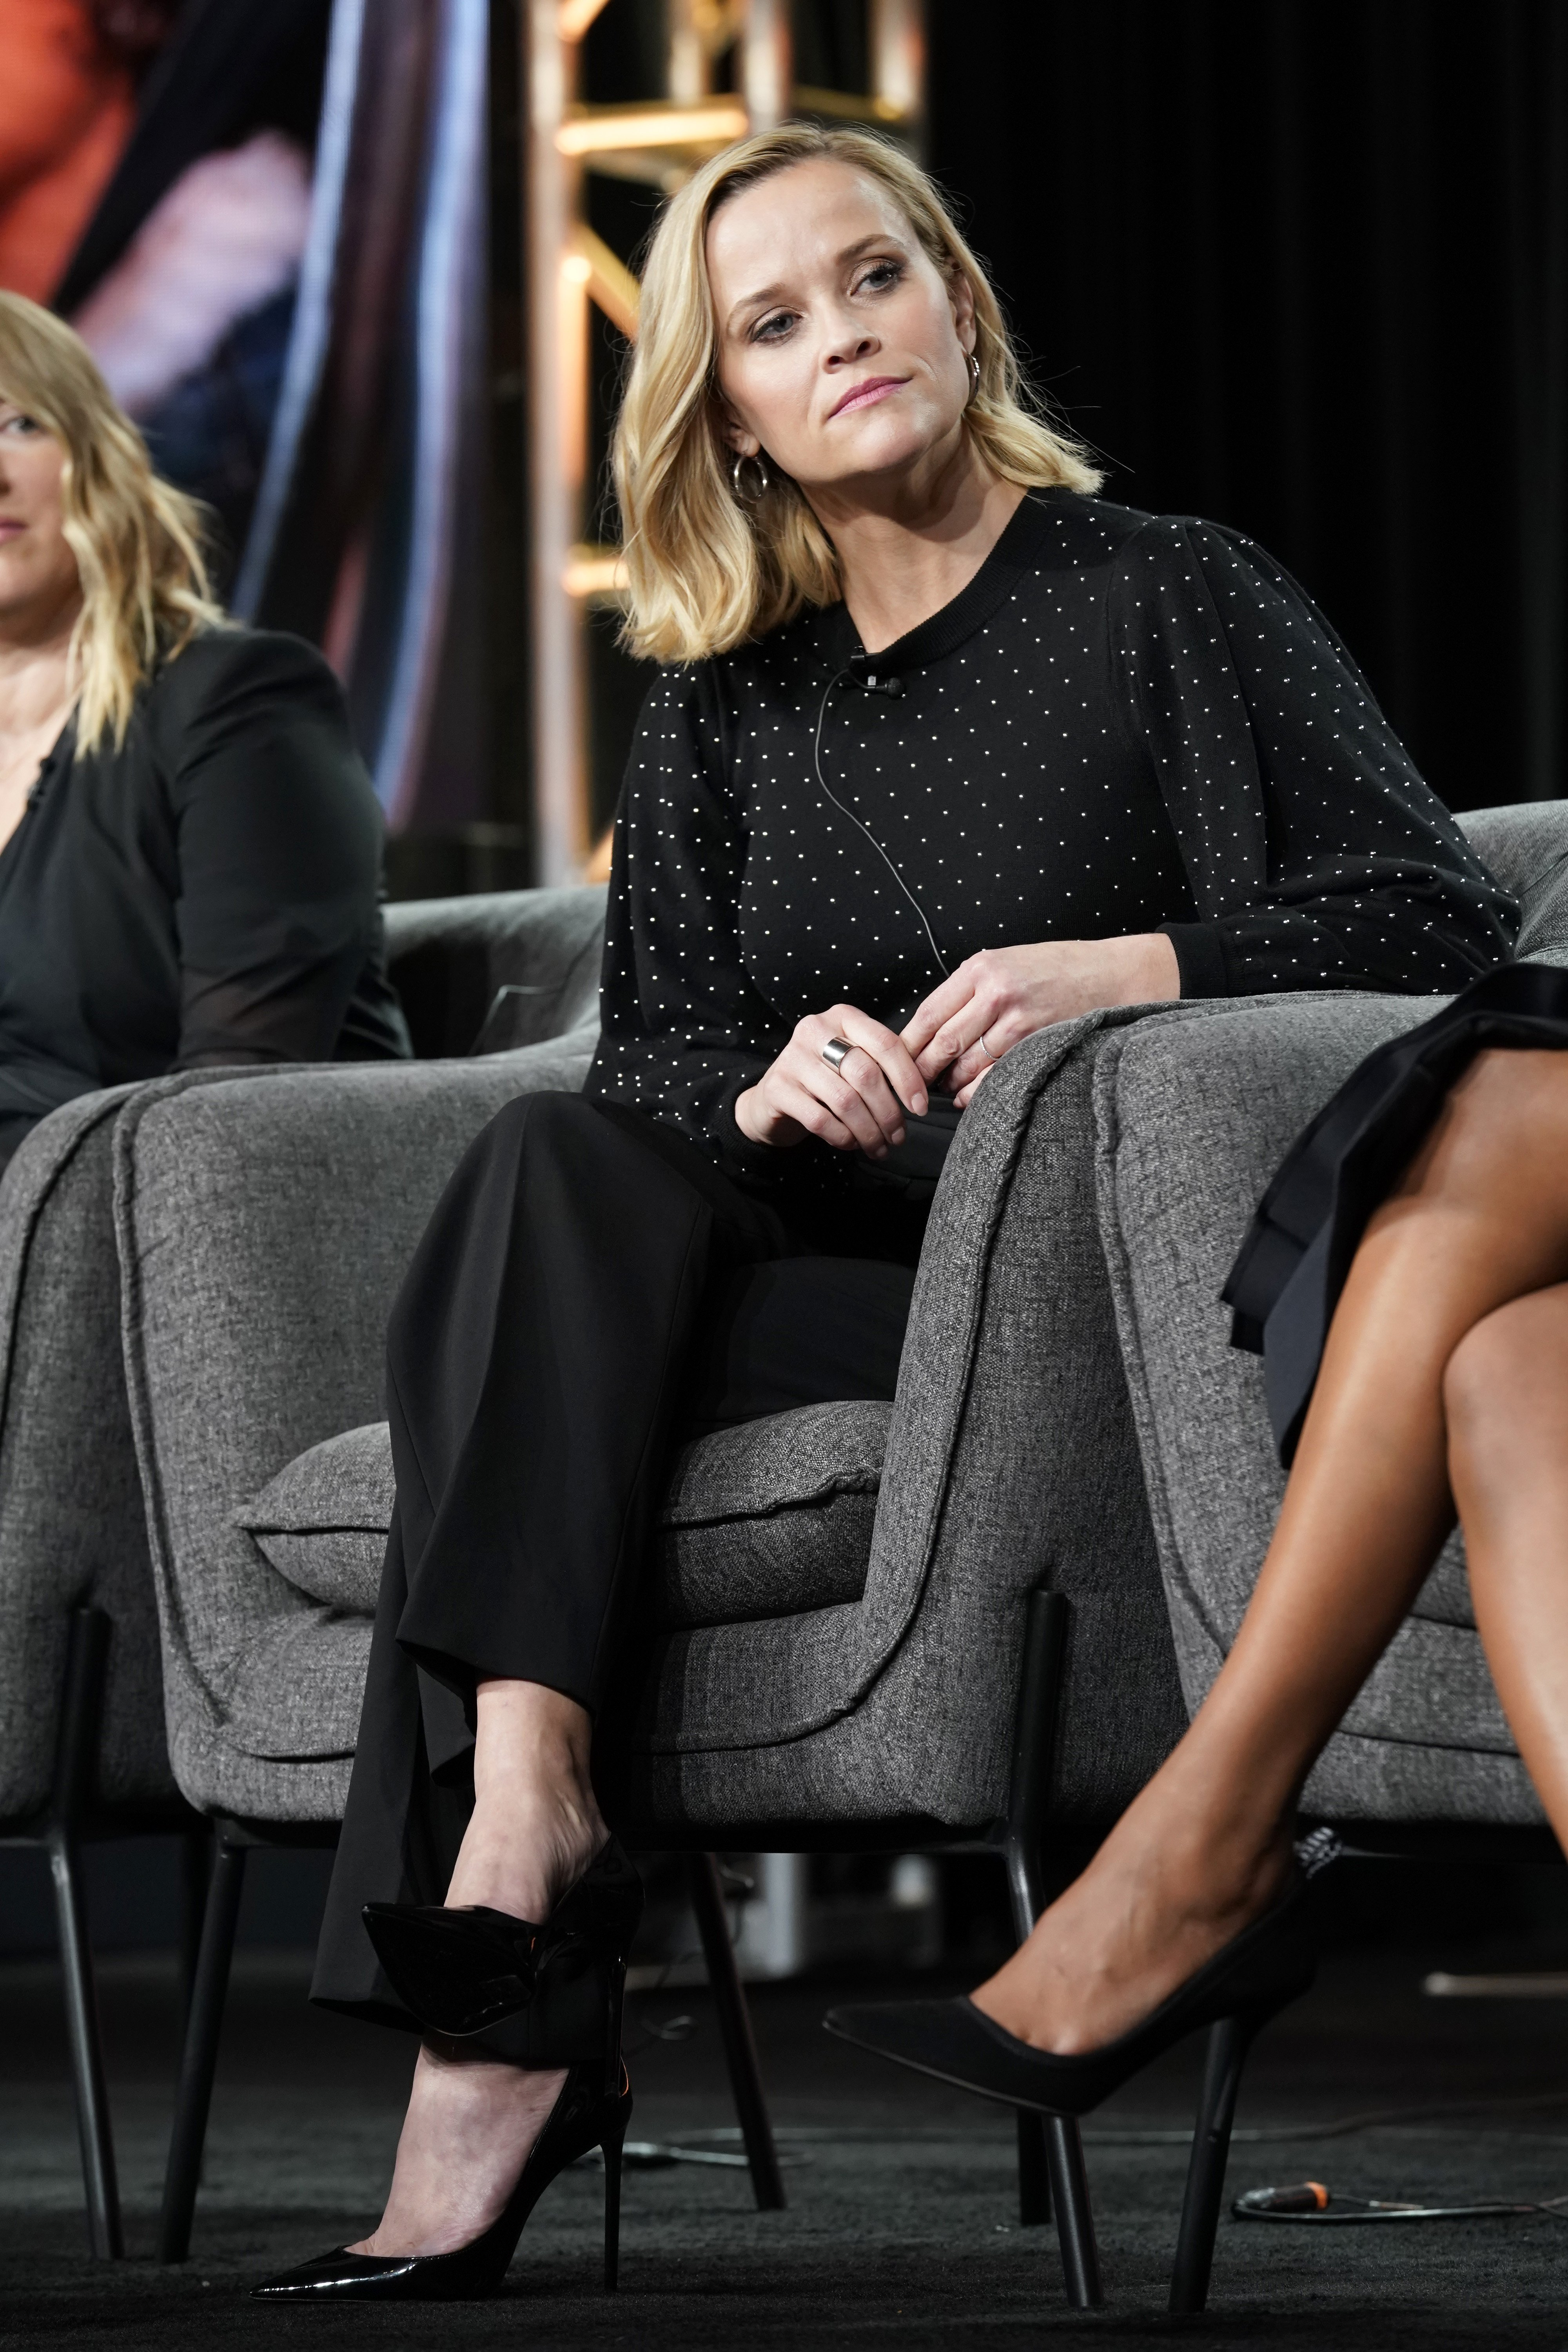 Reese Witherspoon speaks onstage during the Hulu Panel at Winter TCA 2020 at The Langham Huntington, Pasadena on January 17, 2020 in Pasadena, California. | Source: Getty Images